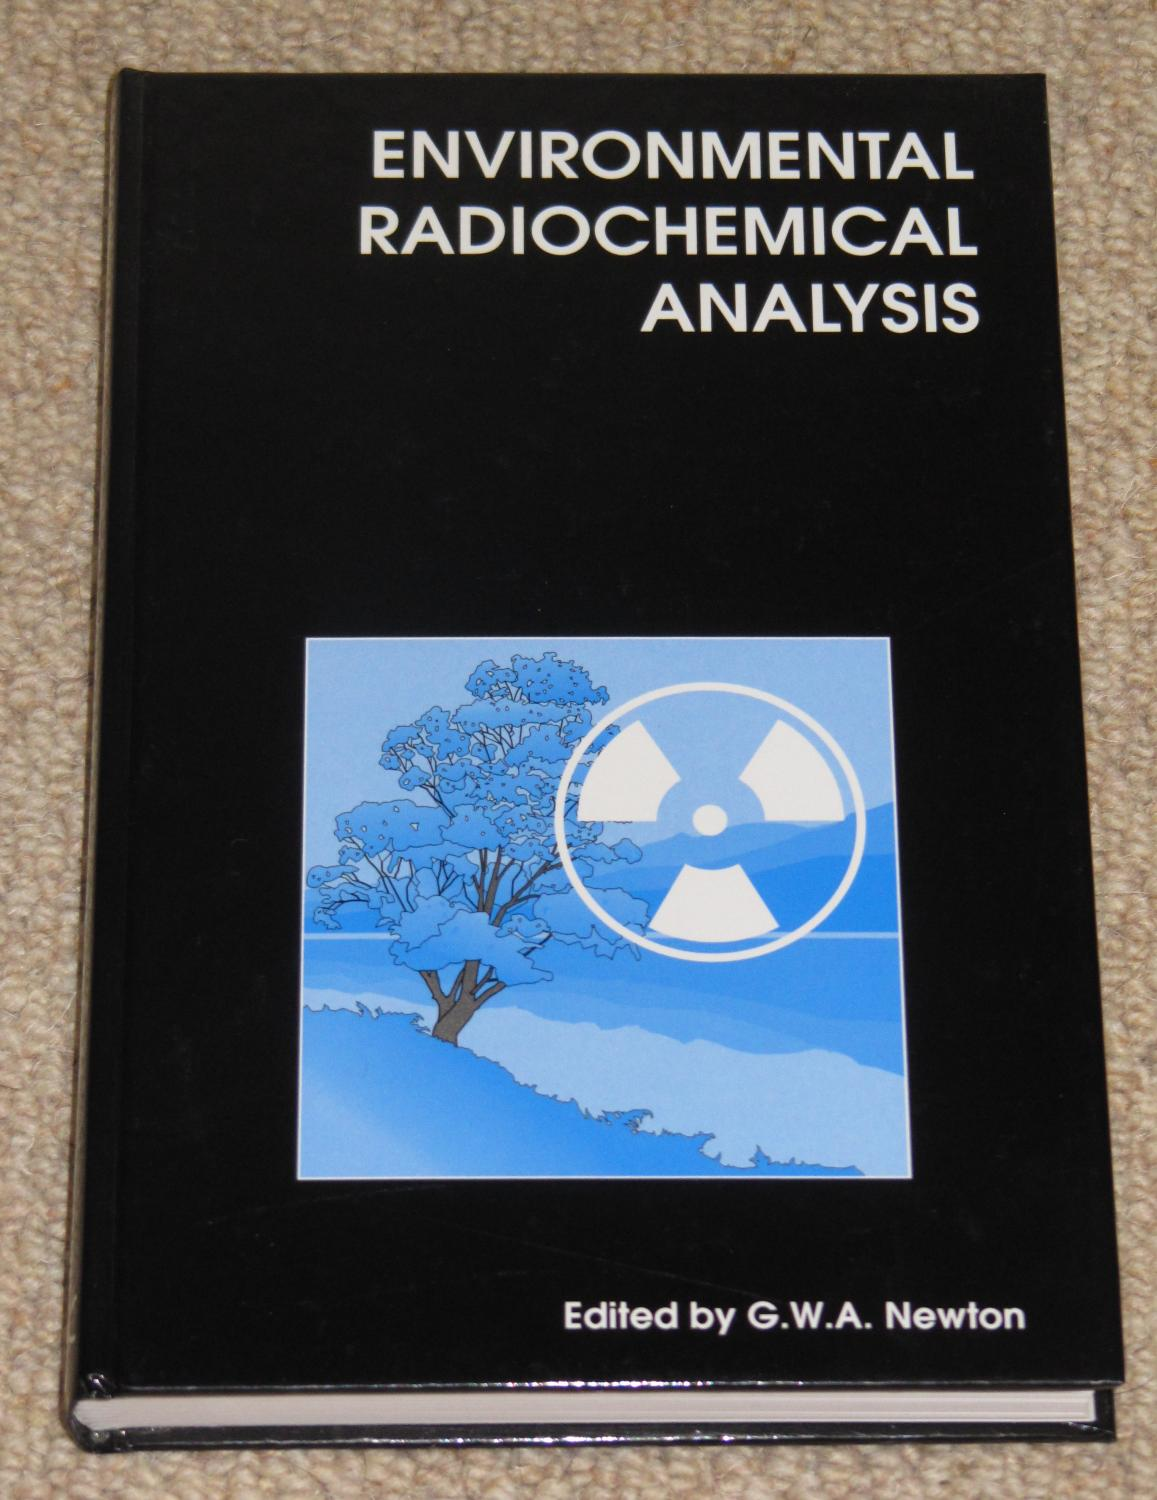 Environmental Radiochemical Analysis - Newton, G.W.A.(Edited by)